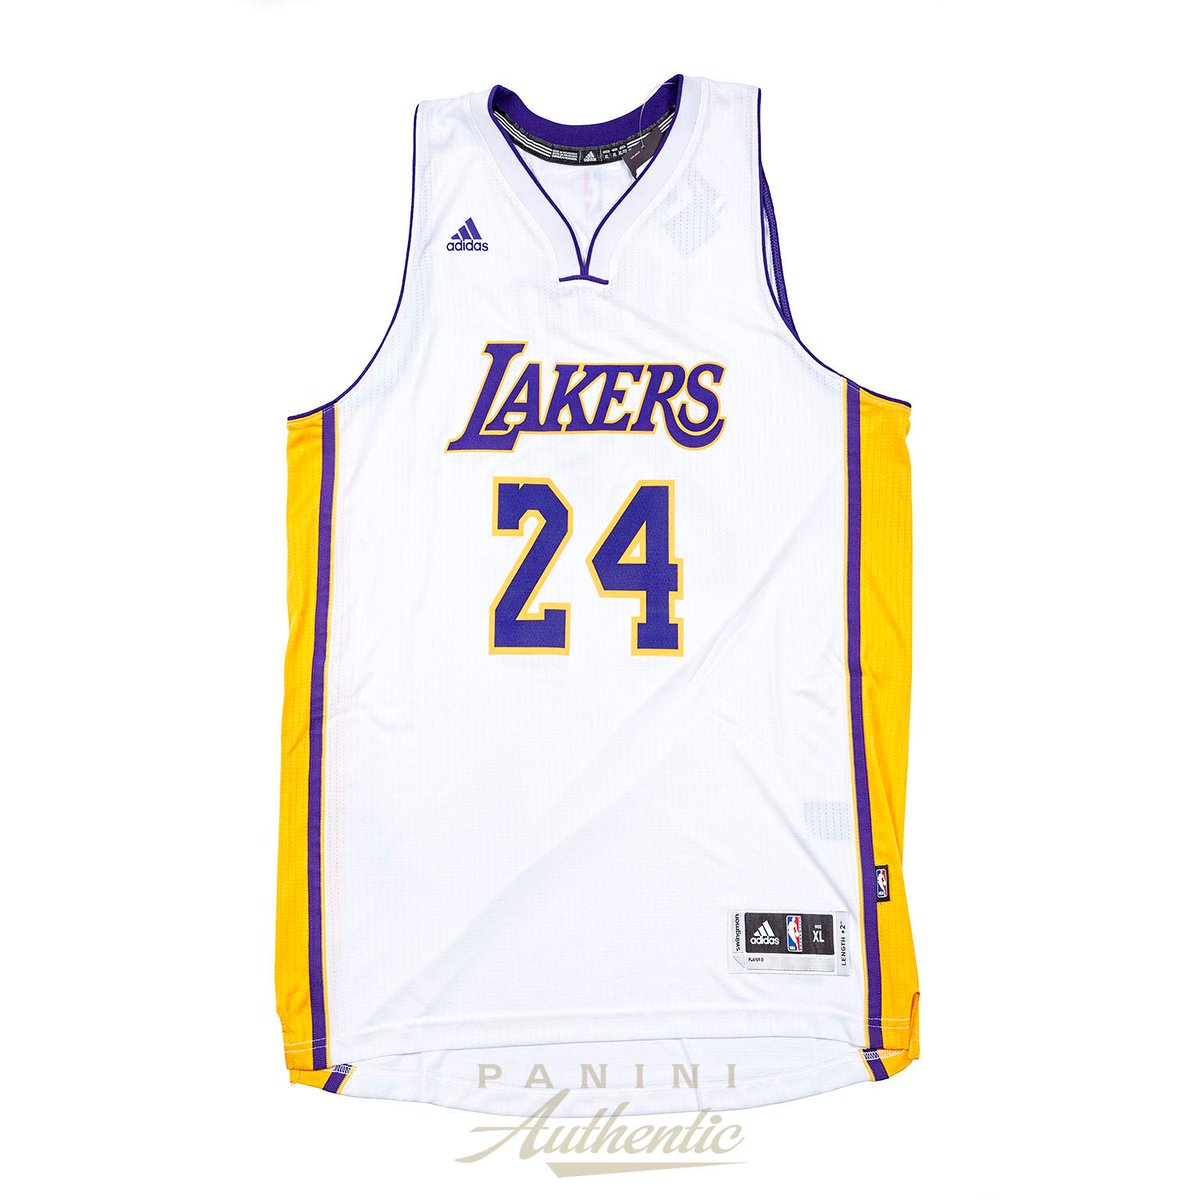 3d68886ec ... but here s your chance to own a collectible Kobe Bryant autographed  Lakers white Swingman Jersey. Plus